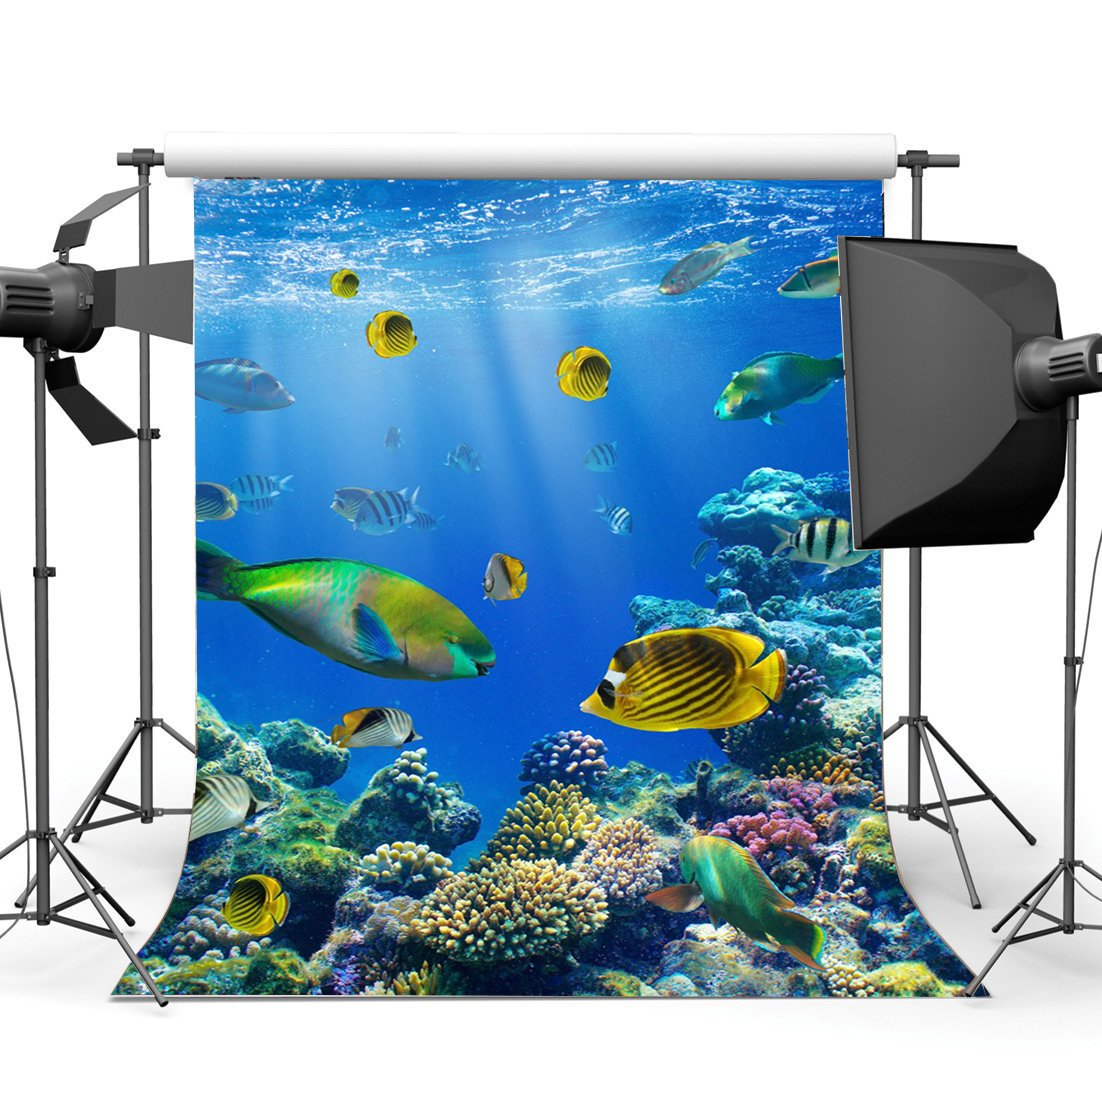 Underwater World Backdrop Aquarium Fancy Coral Colorful Fish Blue Sea Sunshine Lights Summer Sea Journey Background-in Photo Studio Accessories from Consumer Electronics